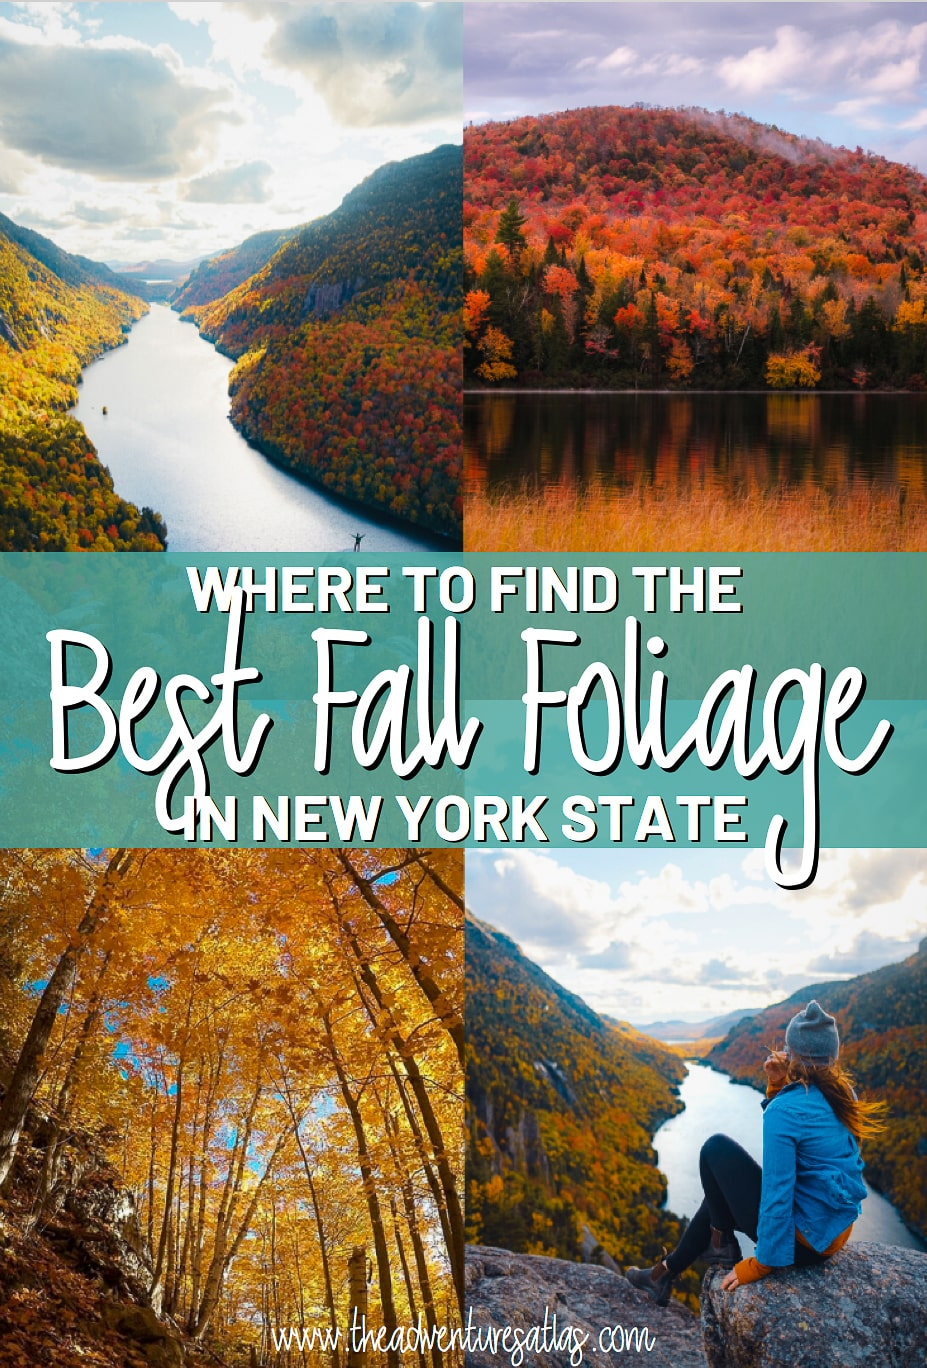 Where to find the best fall foliage in New York State